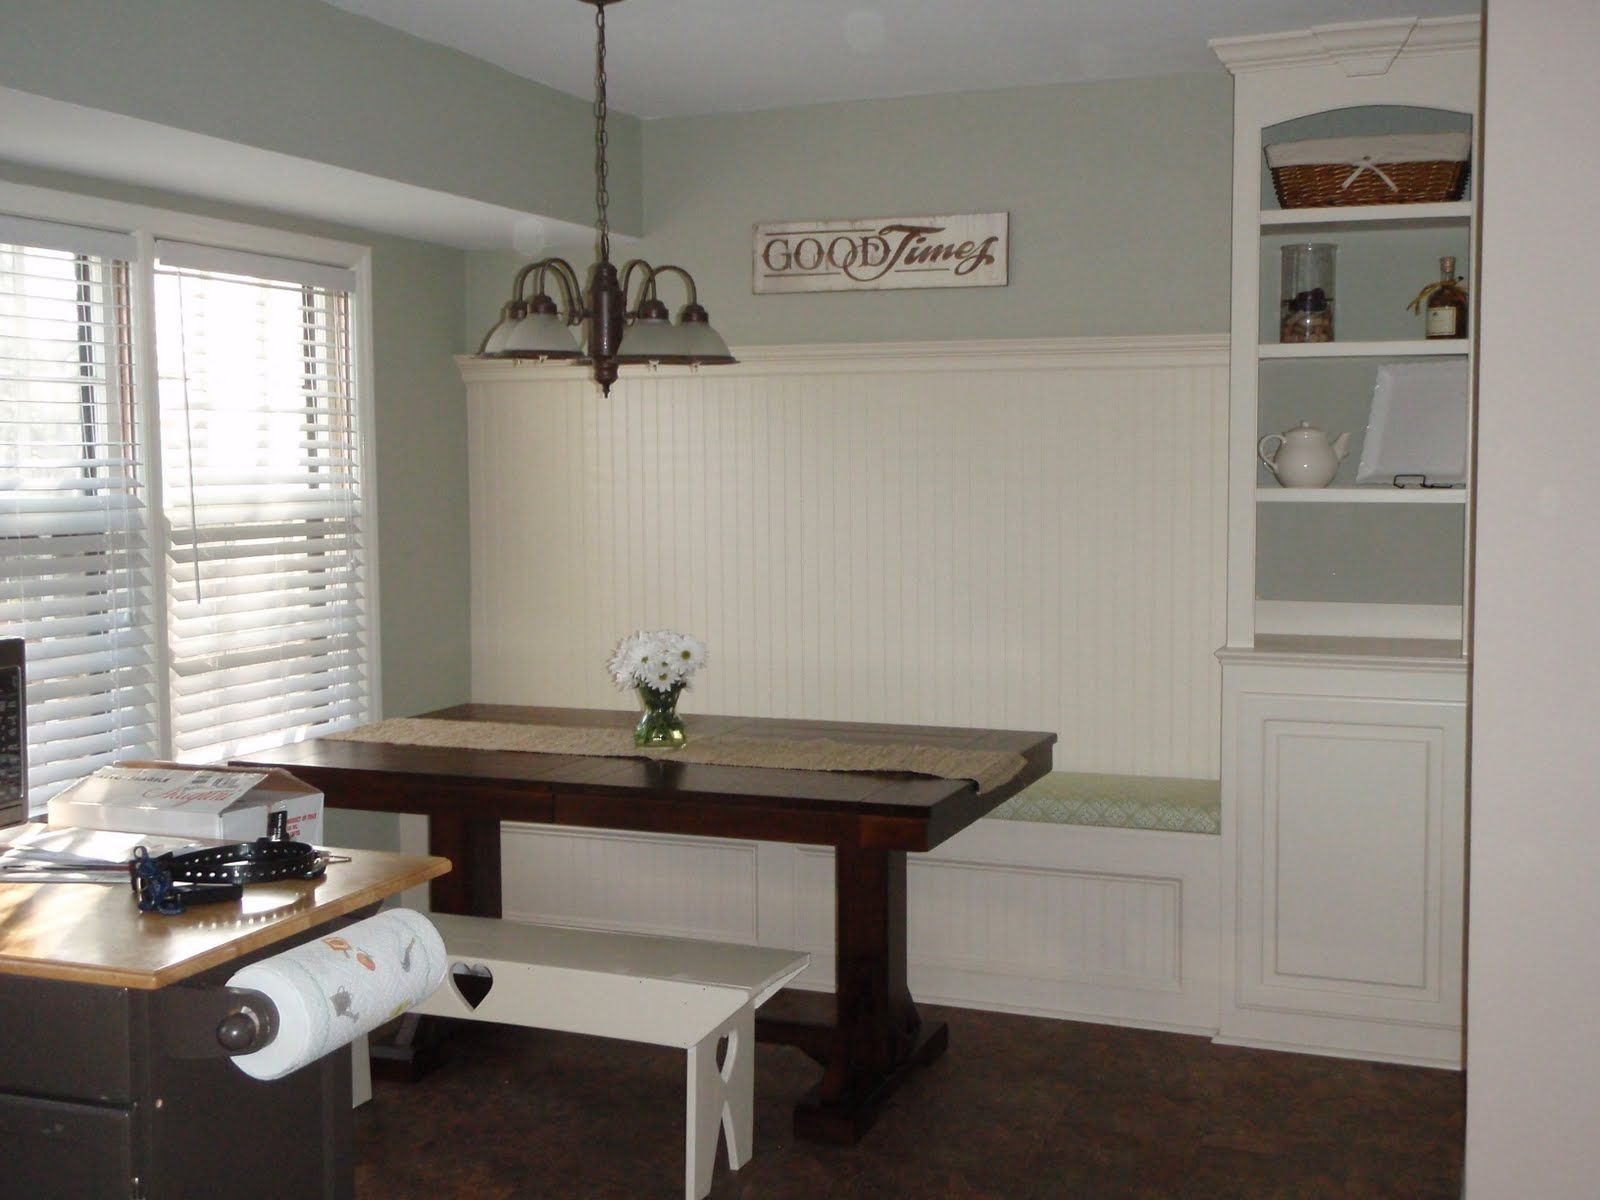 Beautiful Kitchen Renovation With Built In Banquette Seating Bench Seat